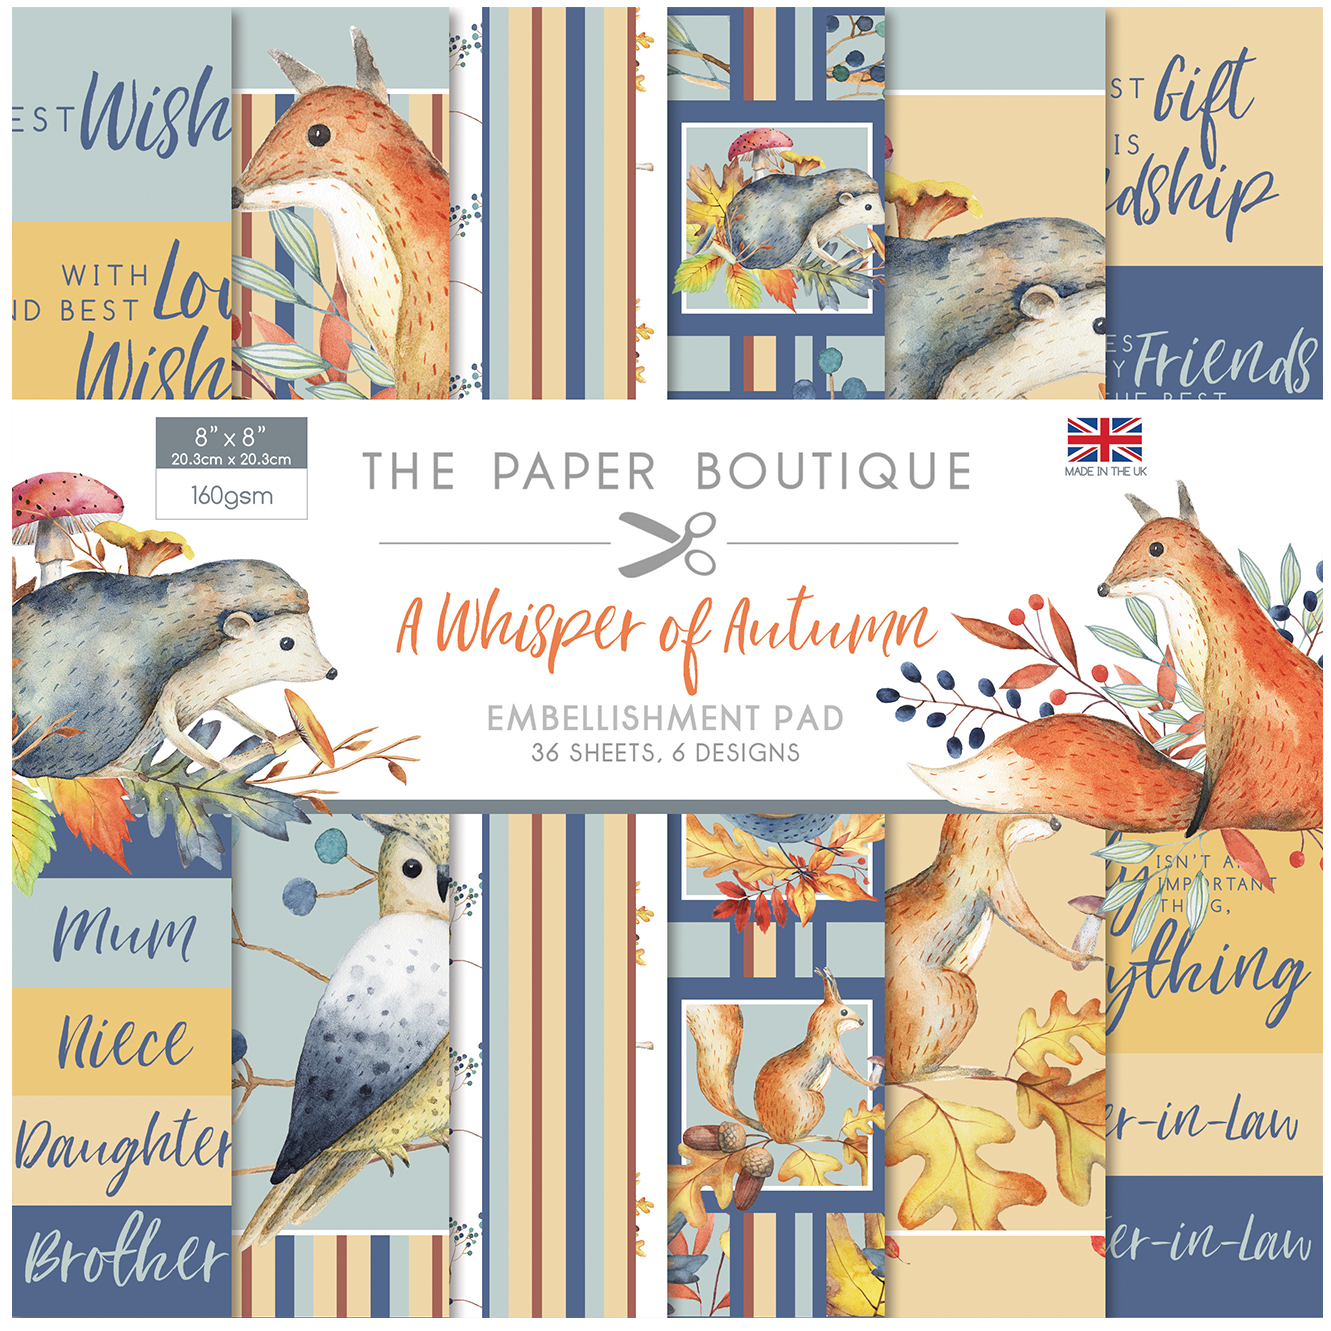 The Paper Boutique A Whisper of Autumn 8″ x 8″ Embellishment Pad